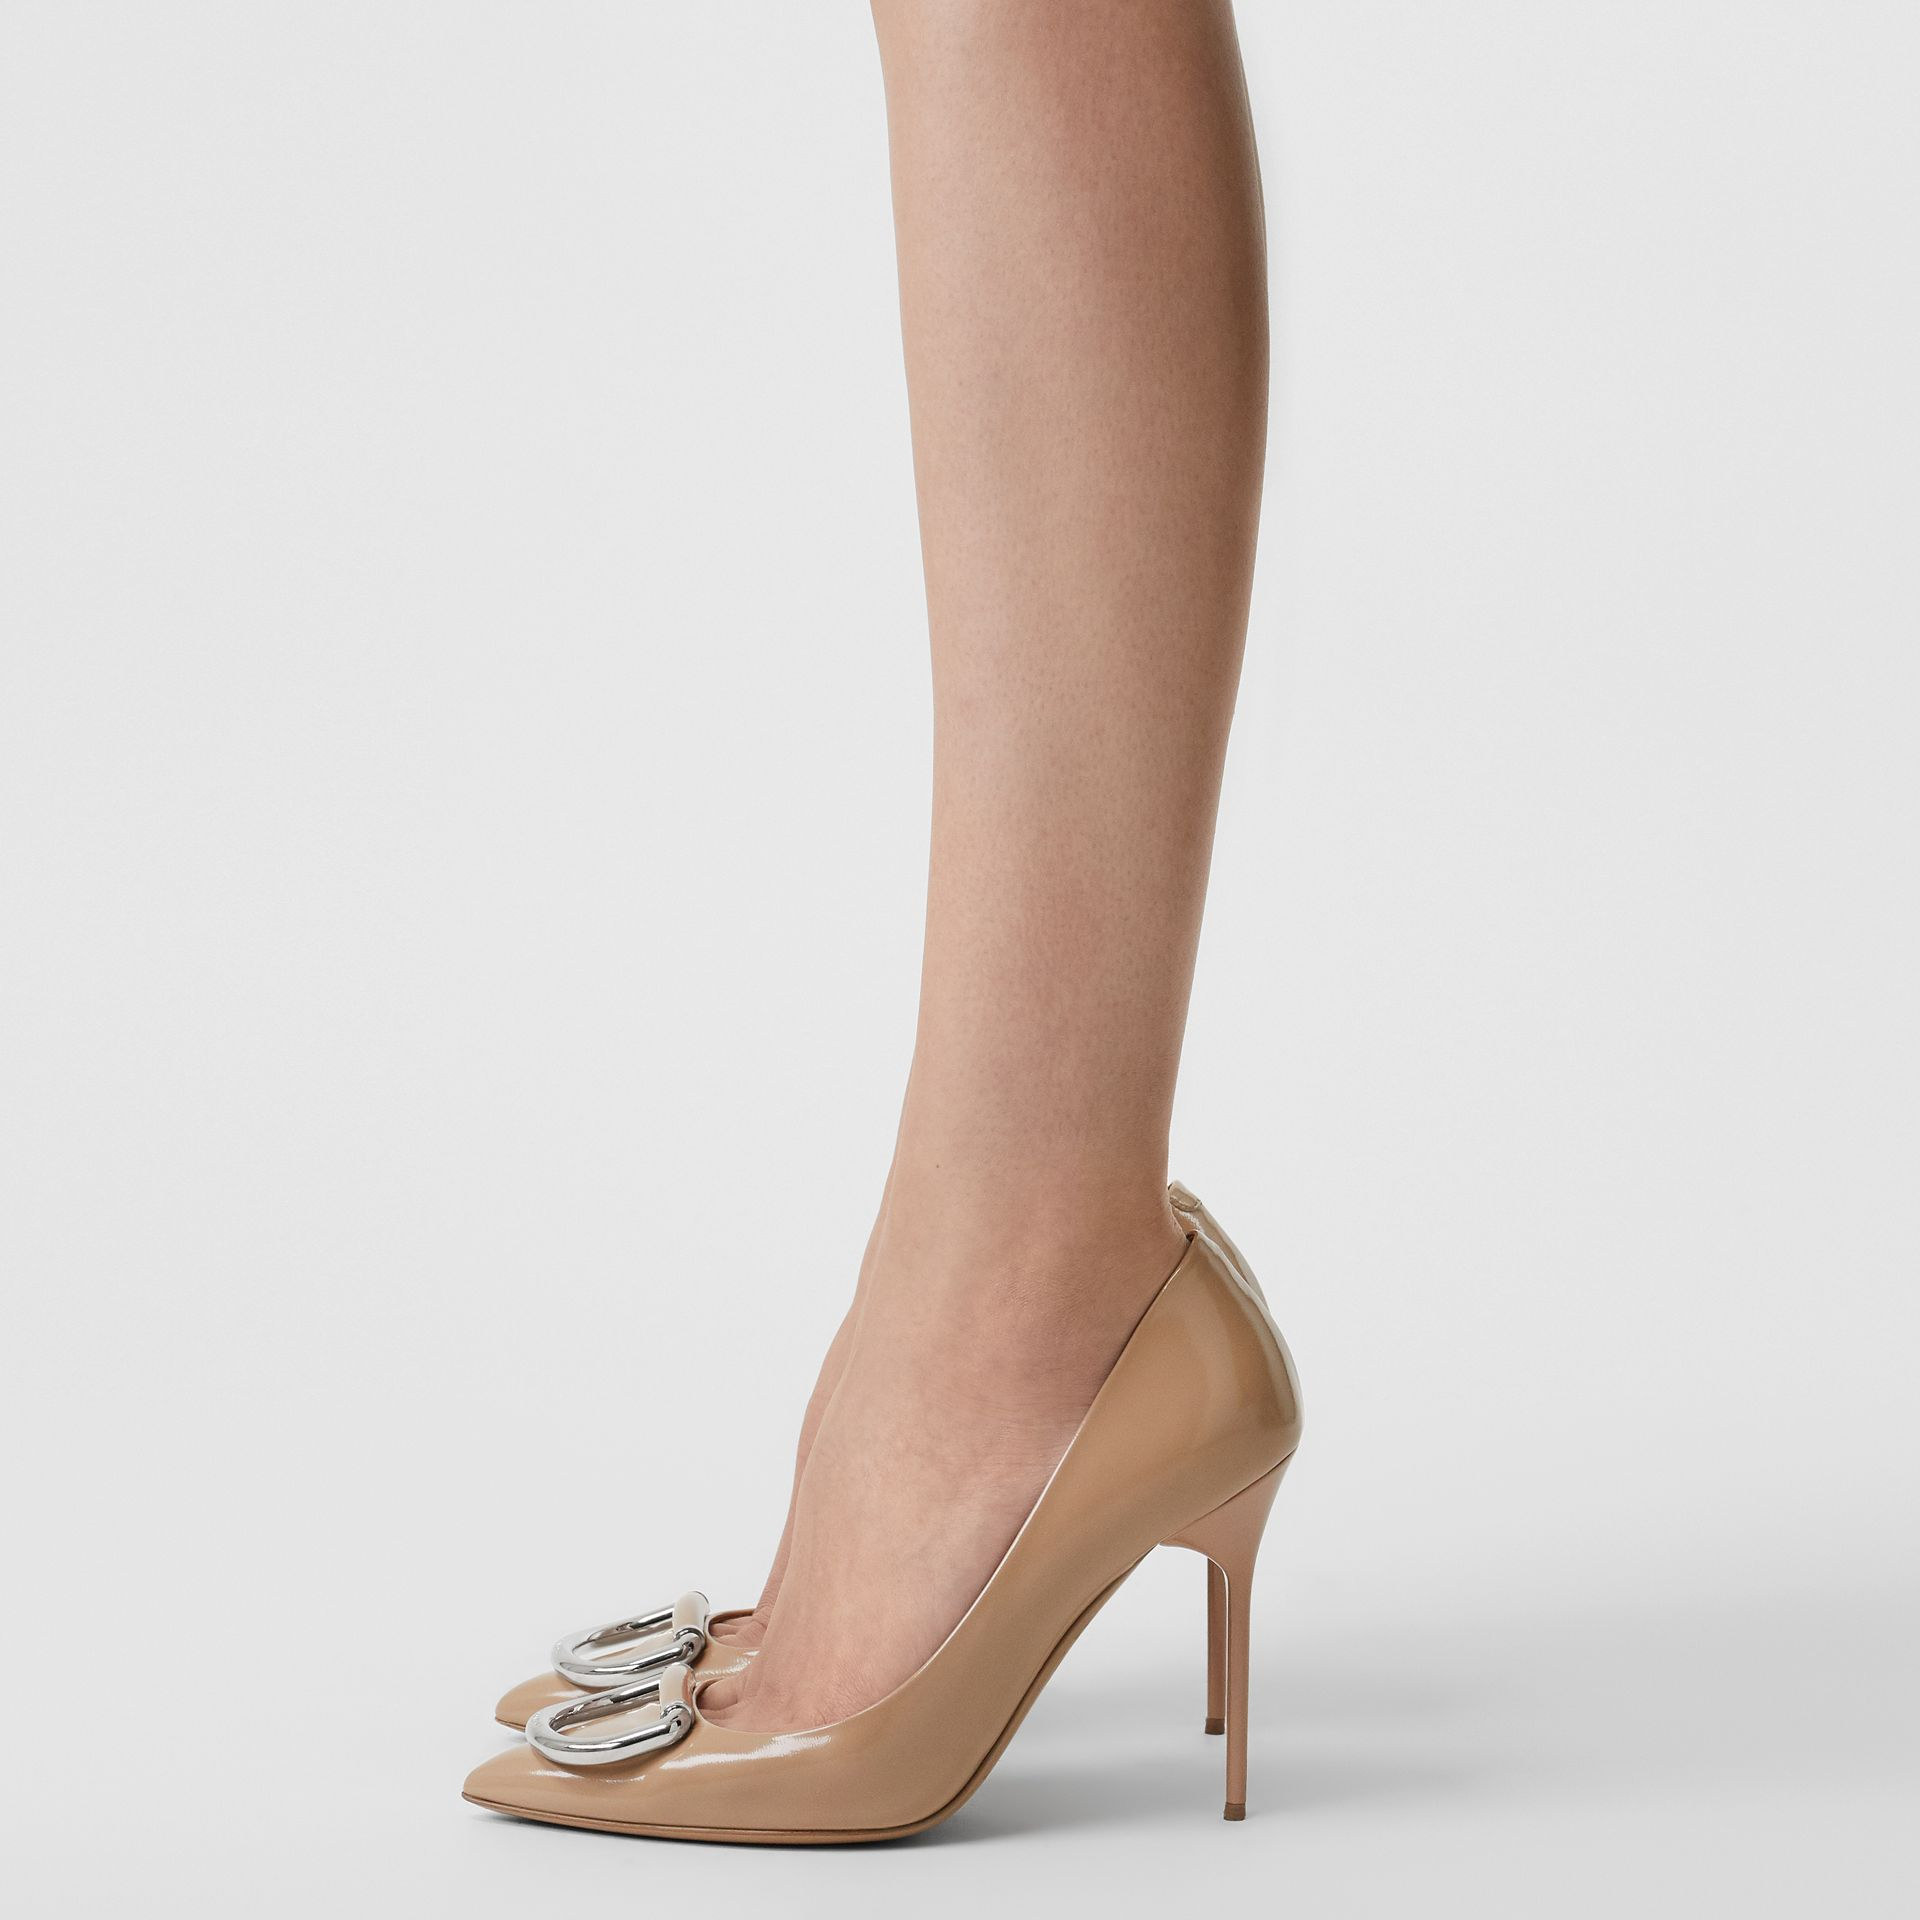 The Leather D-ring Stiletto in Nude Blush - Women | Burberry Canada - gallery image 2